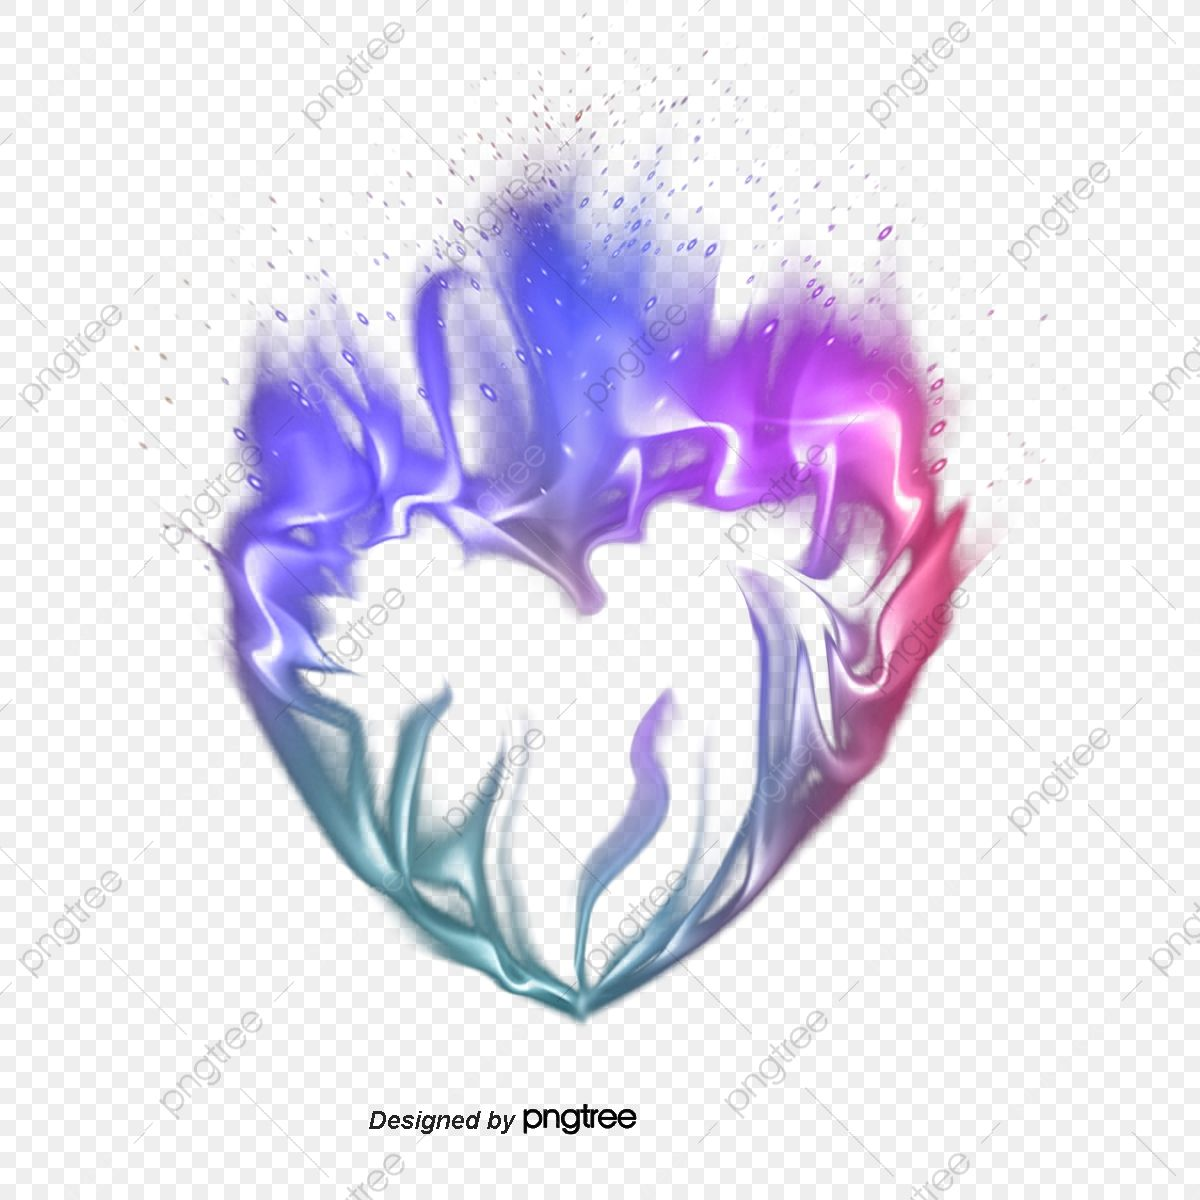 Heart Purple Color Png Transparent Clipart Image And Psd File For Free Download Clip Art Neon Wallpaper Background Banner